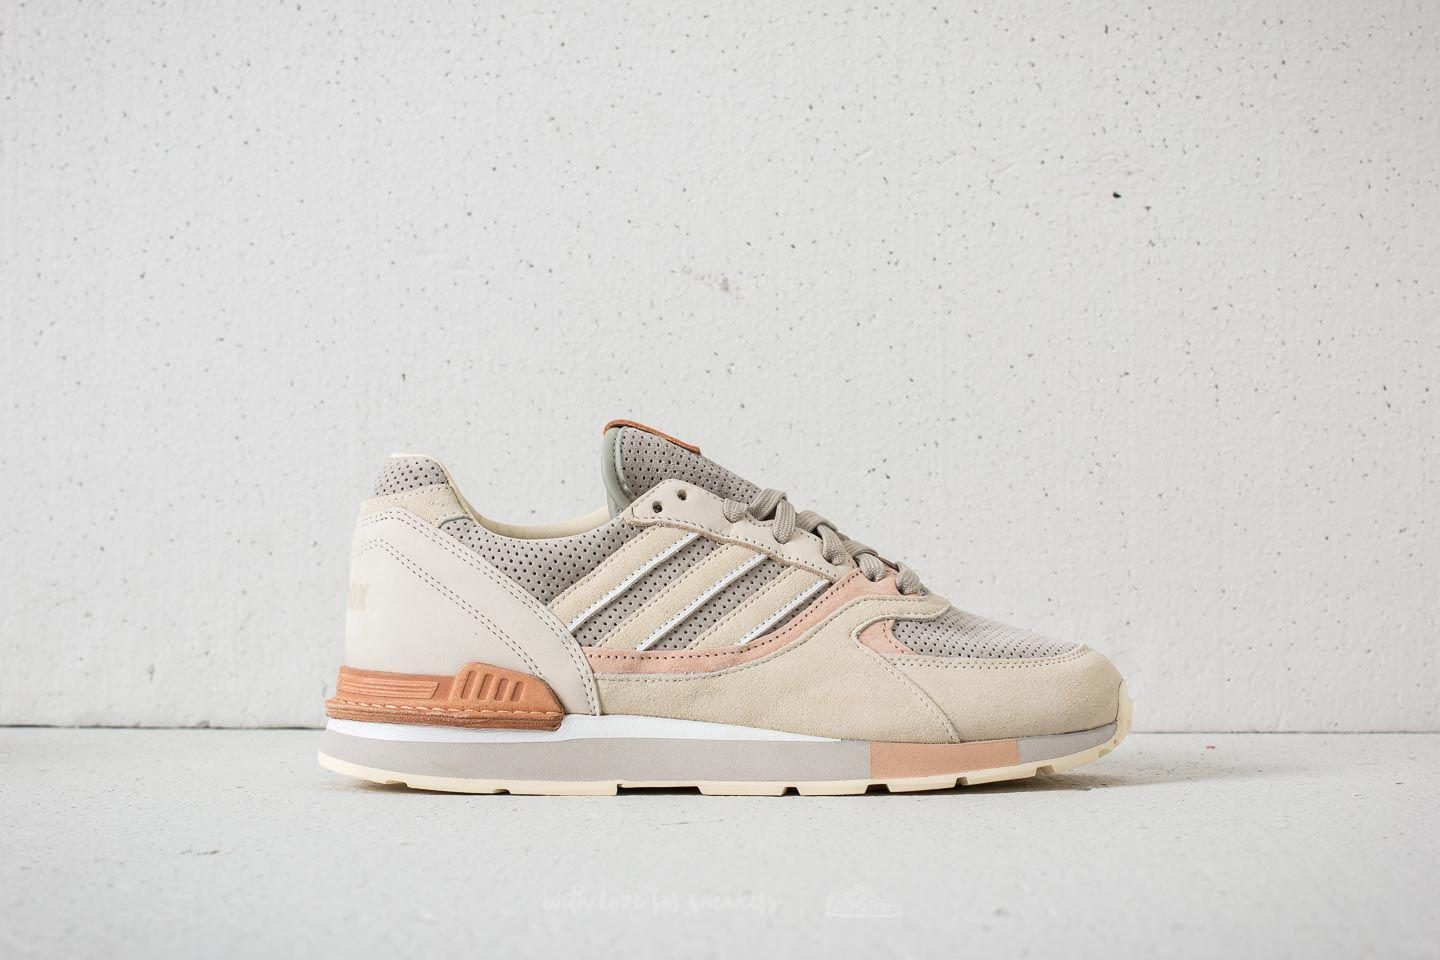 adidas X Solebox Quesence Crystal White/ Crystal White/ Sesame WZFho